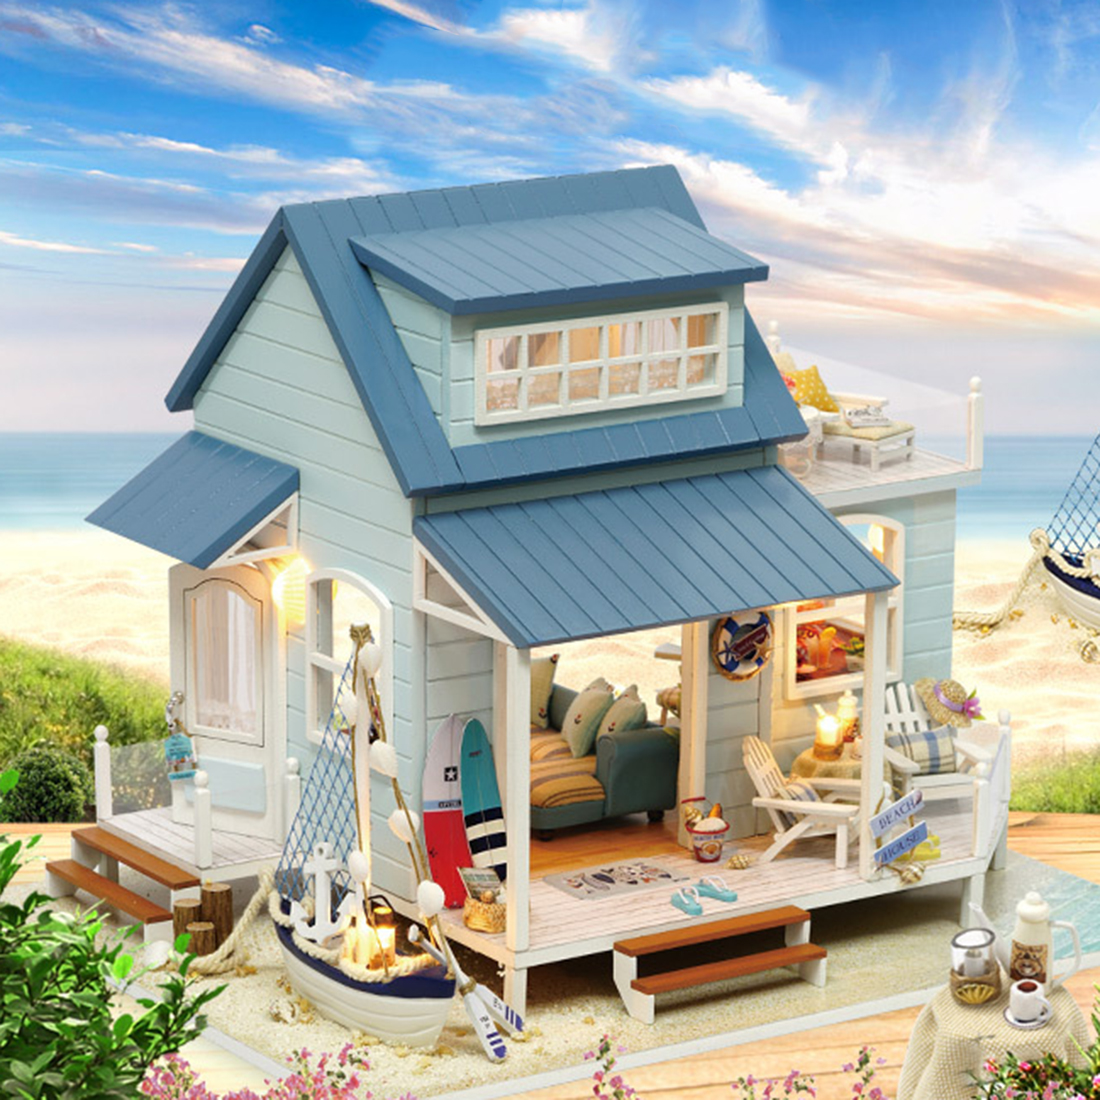 DIY Doll House Wooden Doll House Miniature dollhouse Furniture Kit Toys for Kids Christmas Gift Caribbean